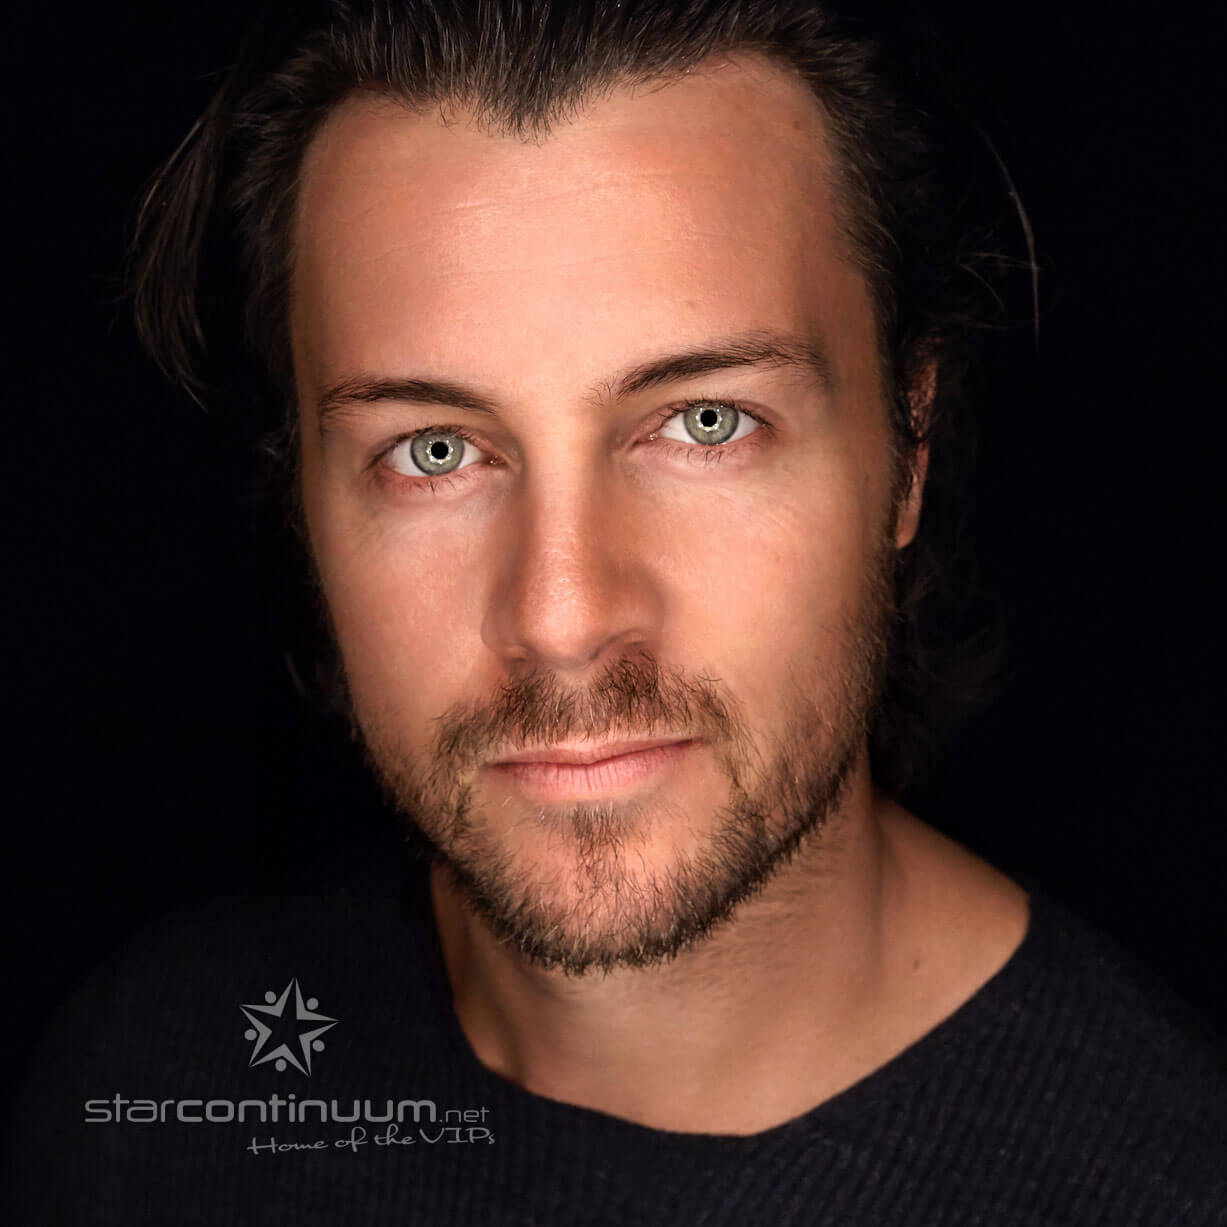 starcontinuum.net | Faces | Dan Feuerriegel